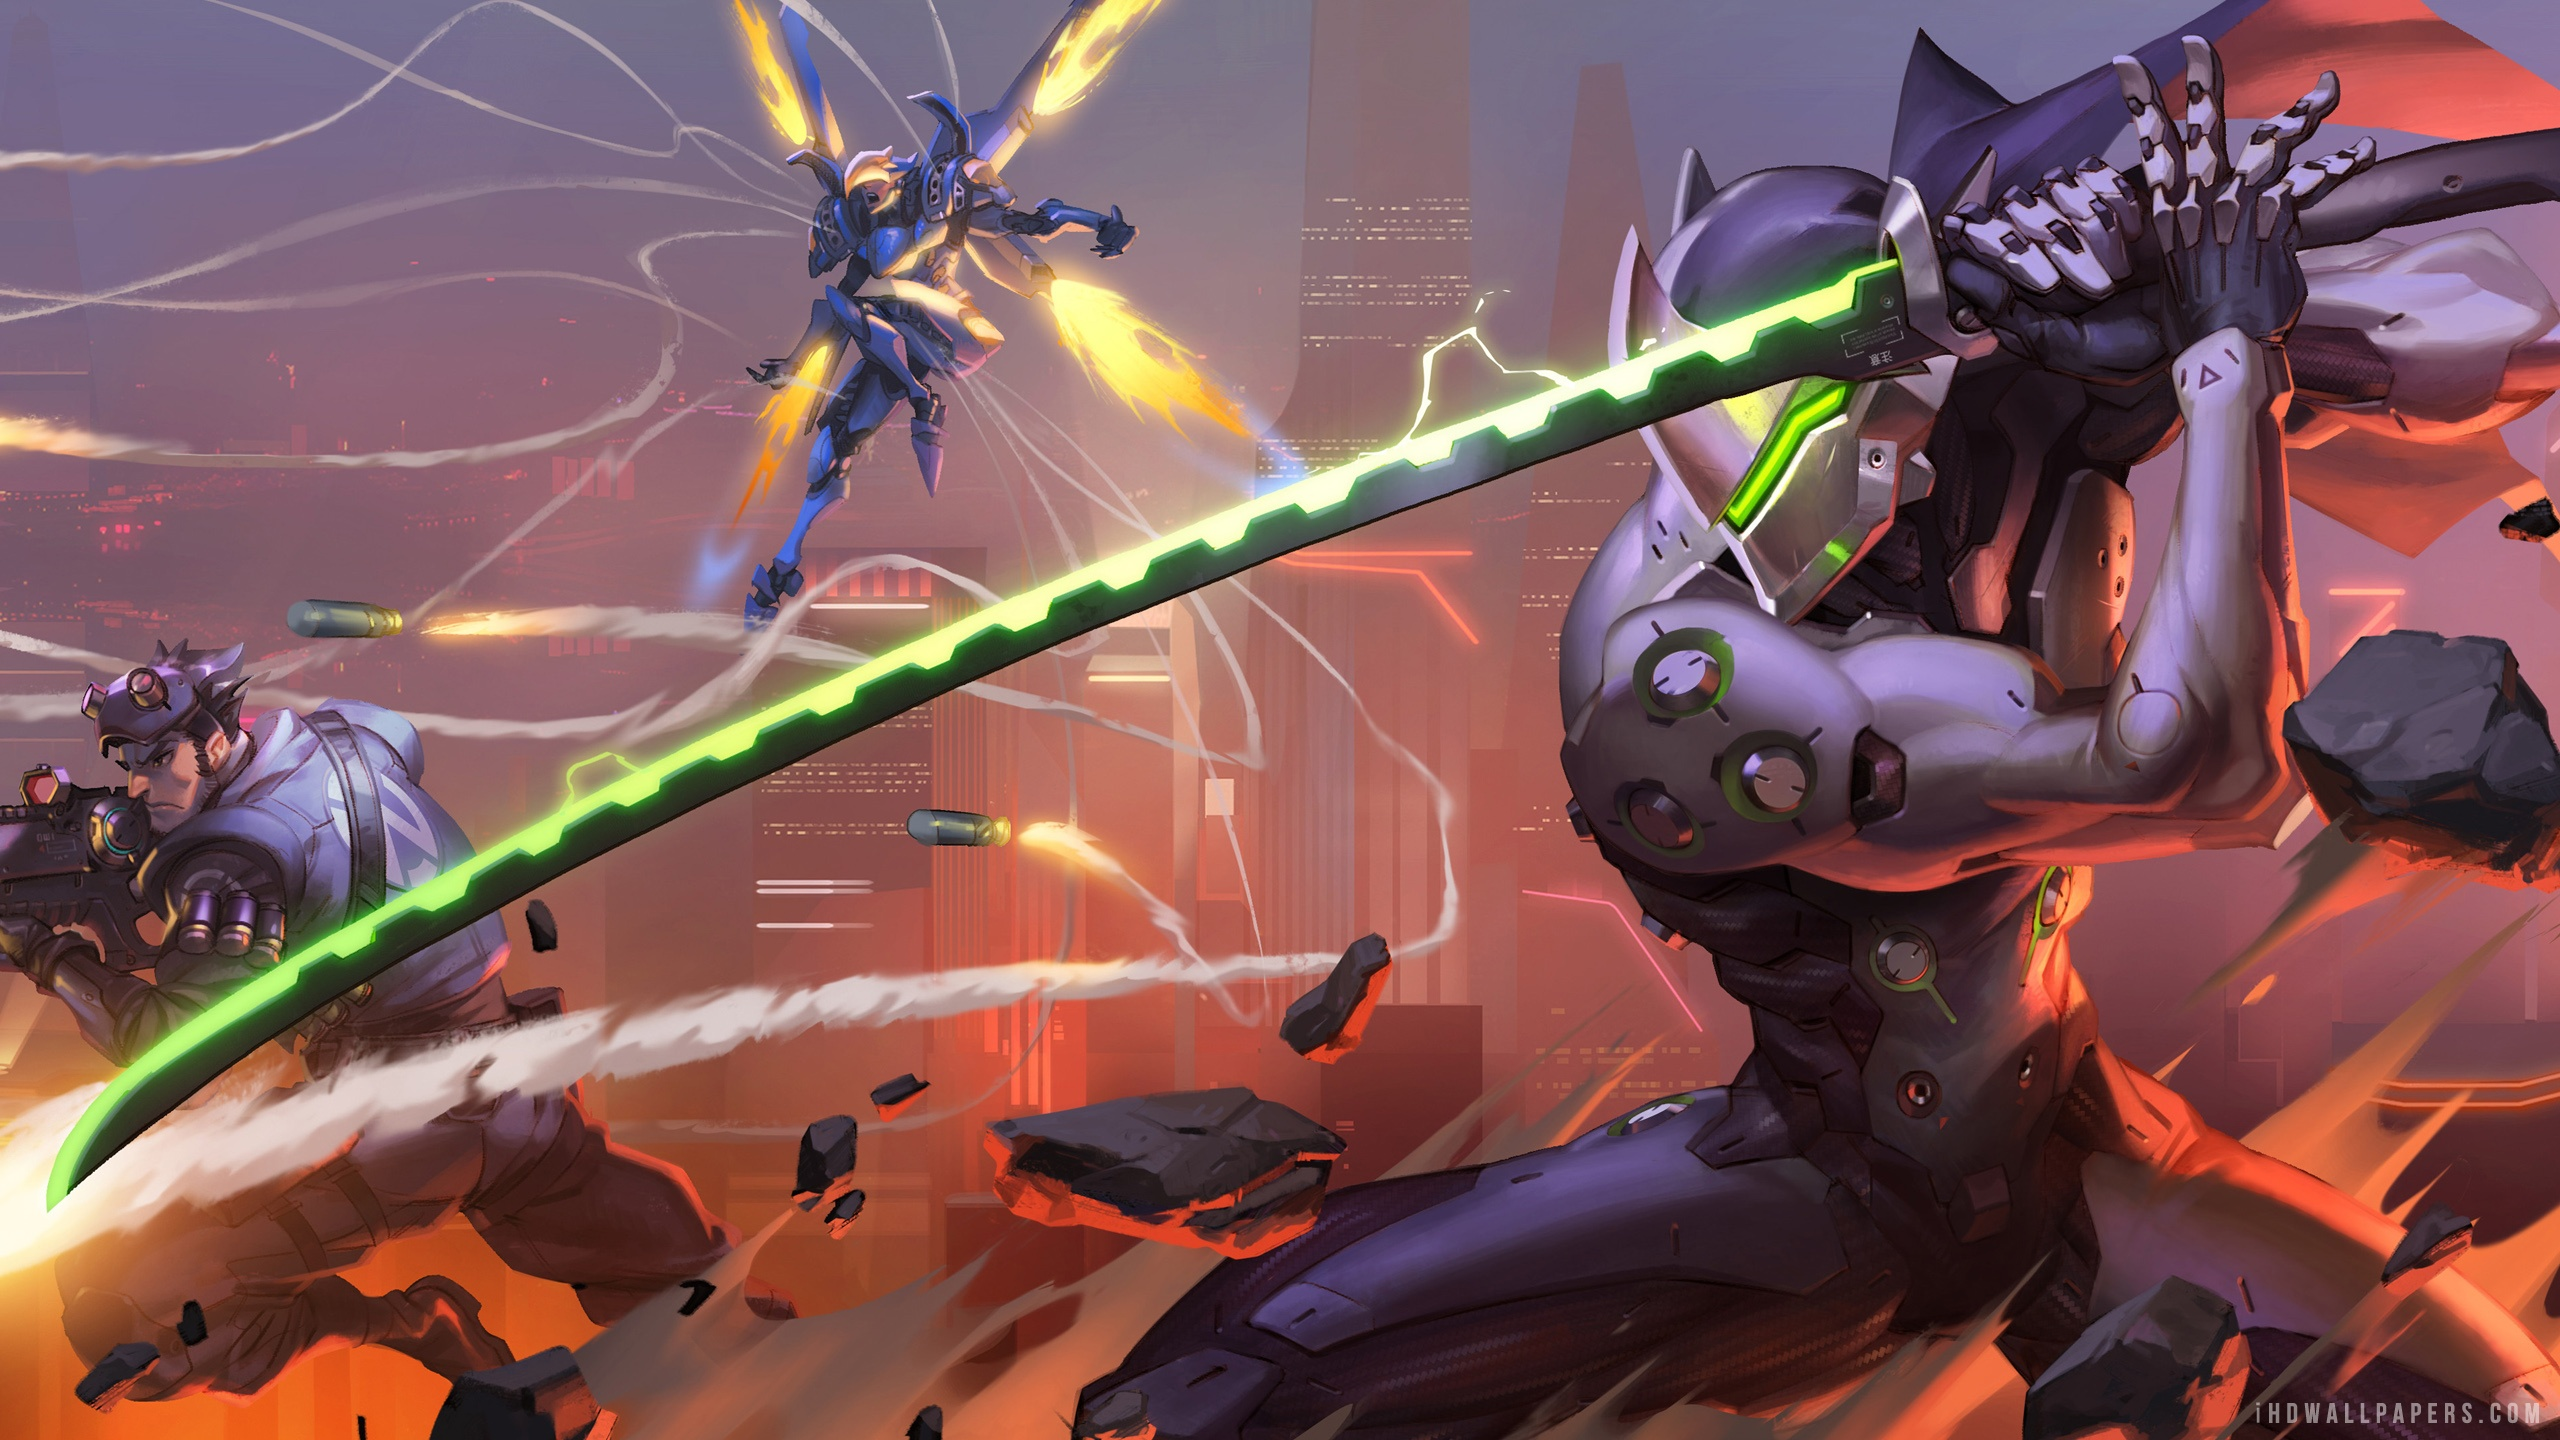 Overwatch Game Play HD Wallpaper   iHD Wallpapers 2560x1440